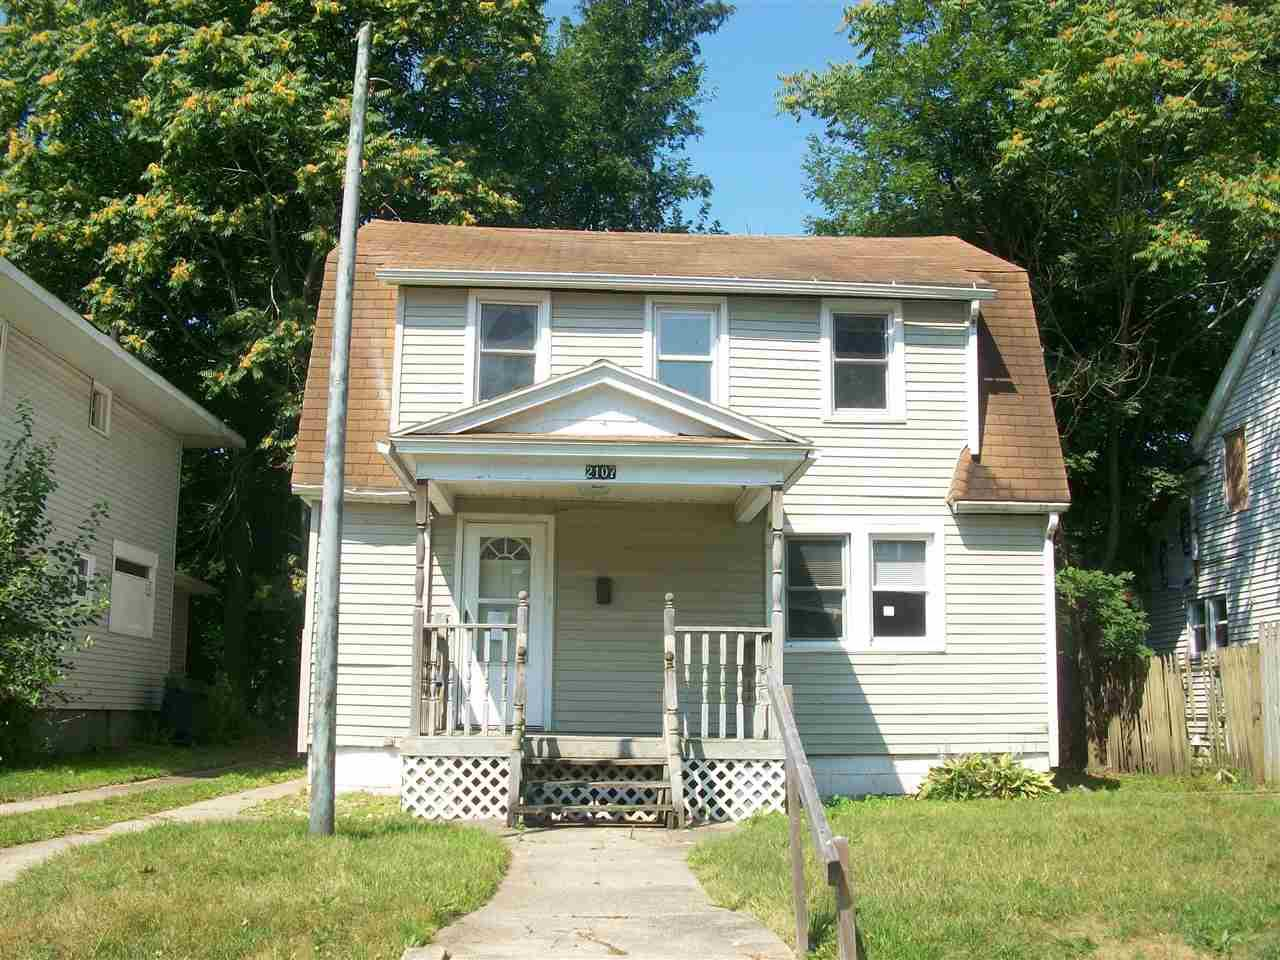 2107 High South Bend, IN 46613